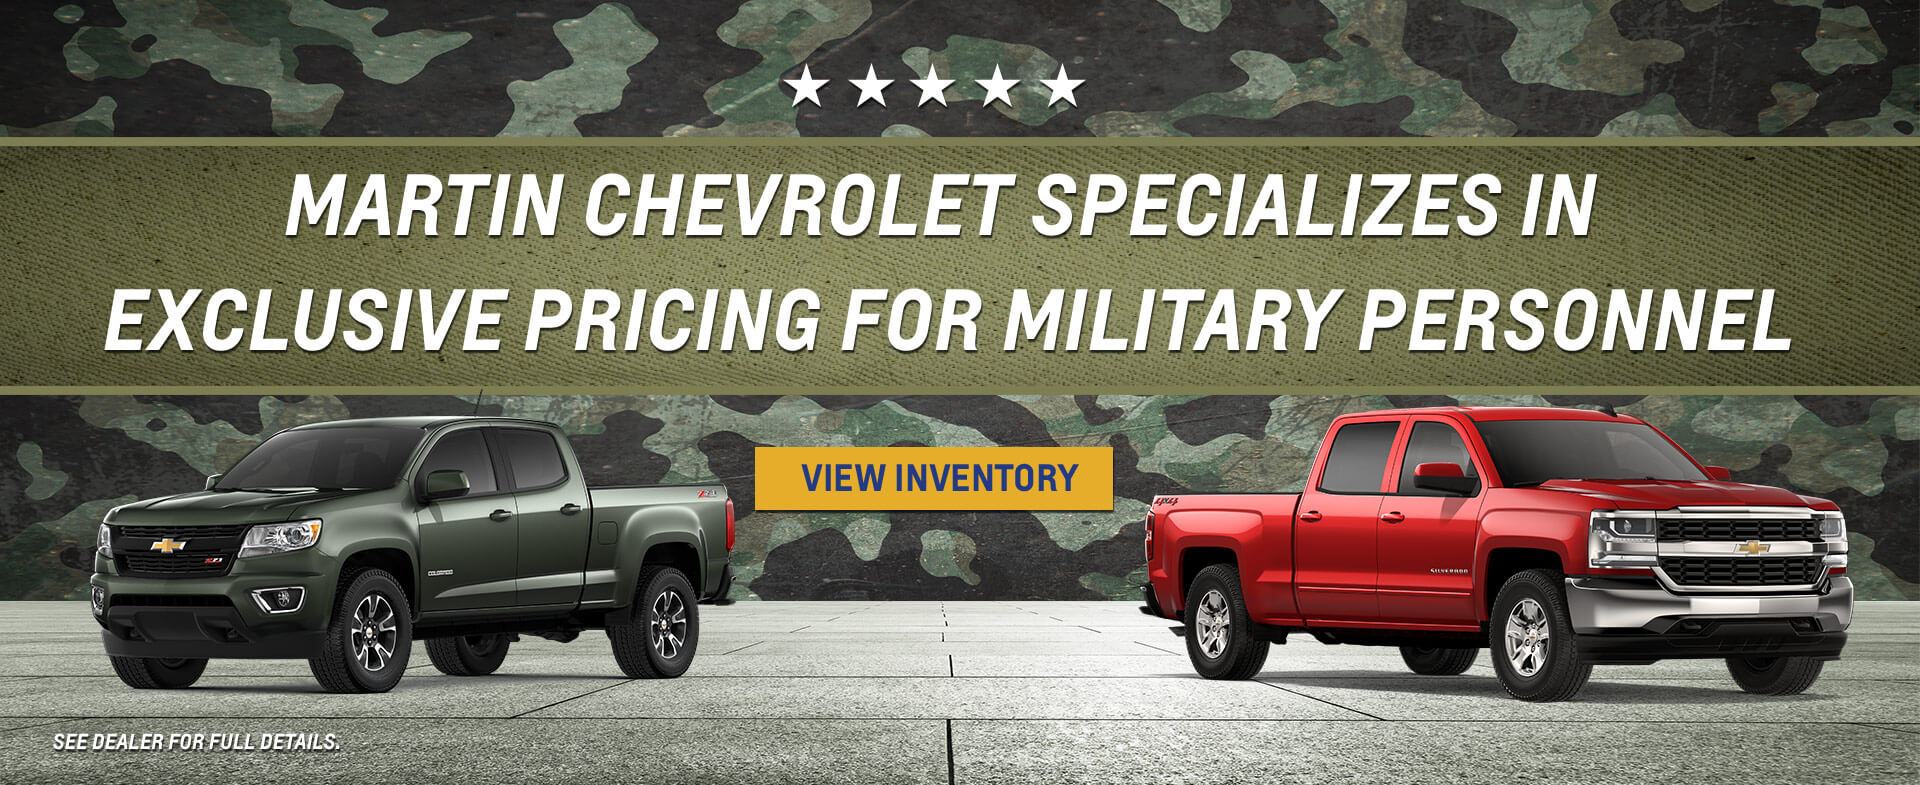 Military Chevy Pricing